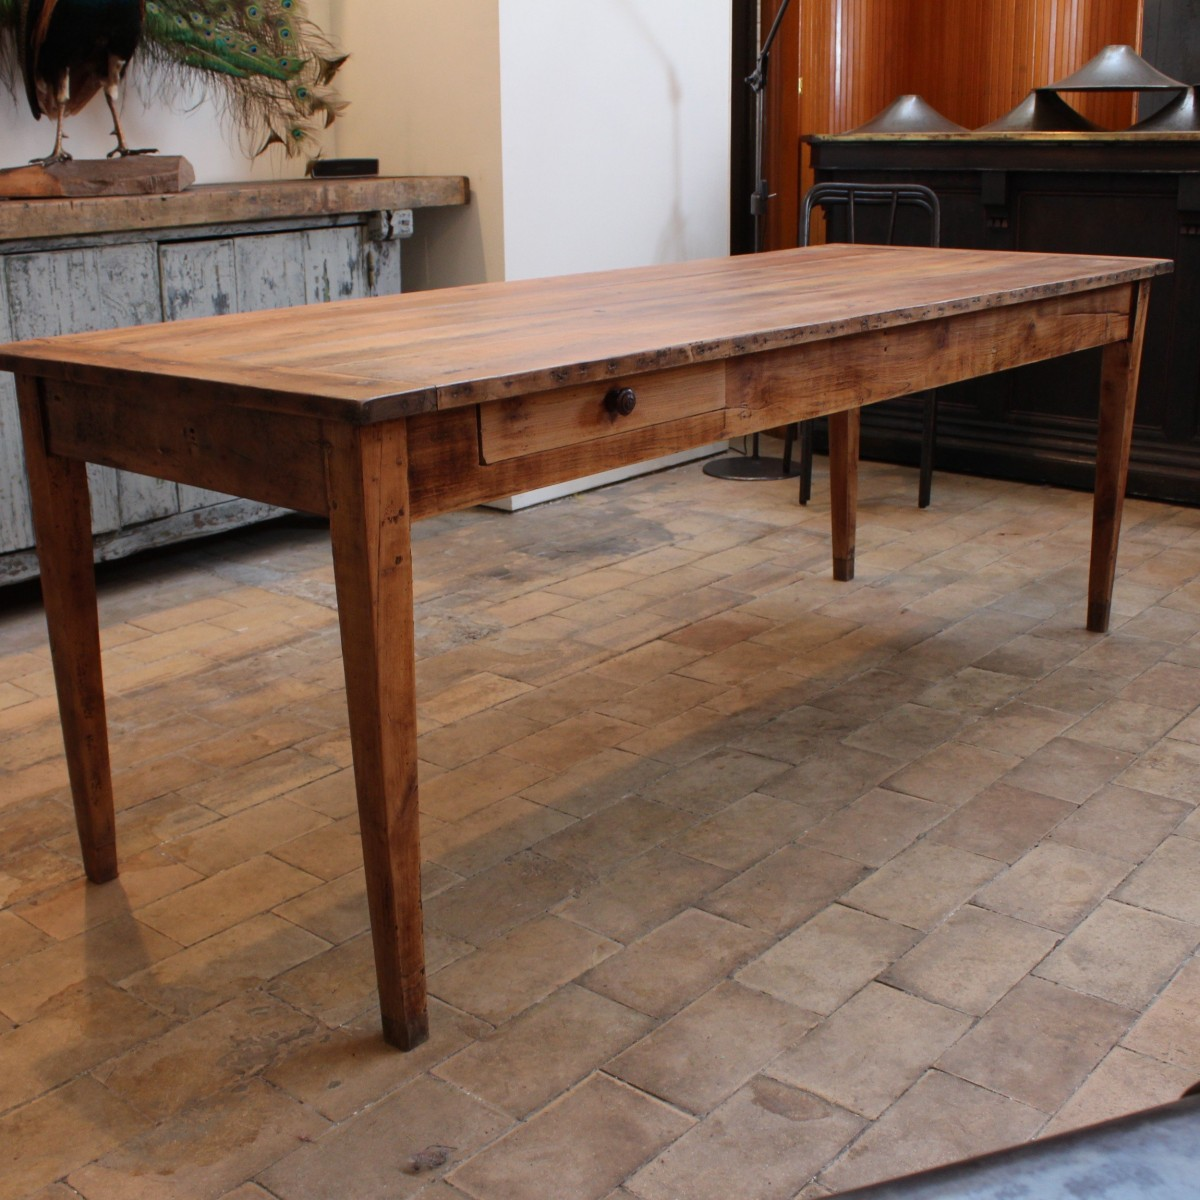 Wooden Farm Table - The farm table ma